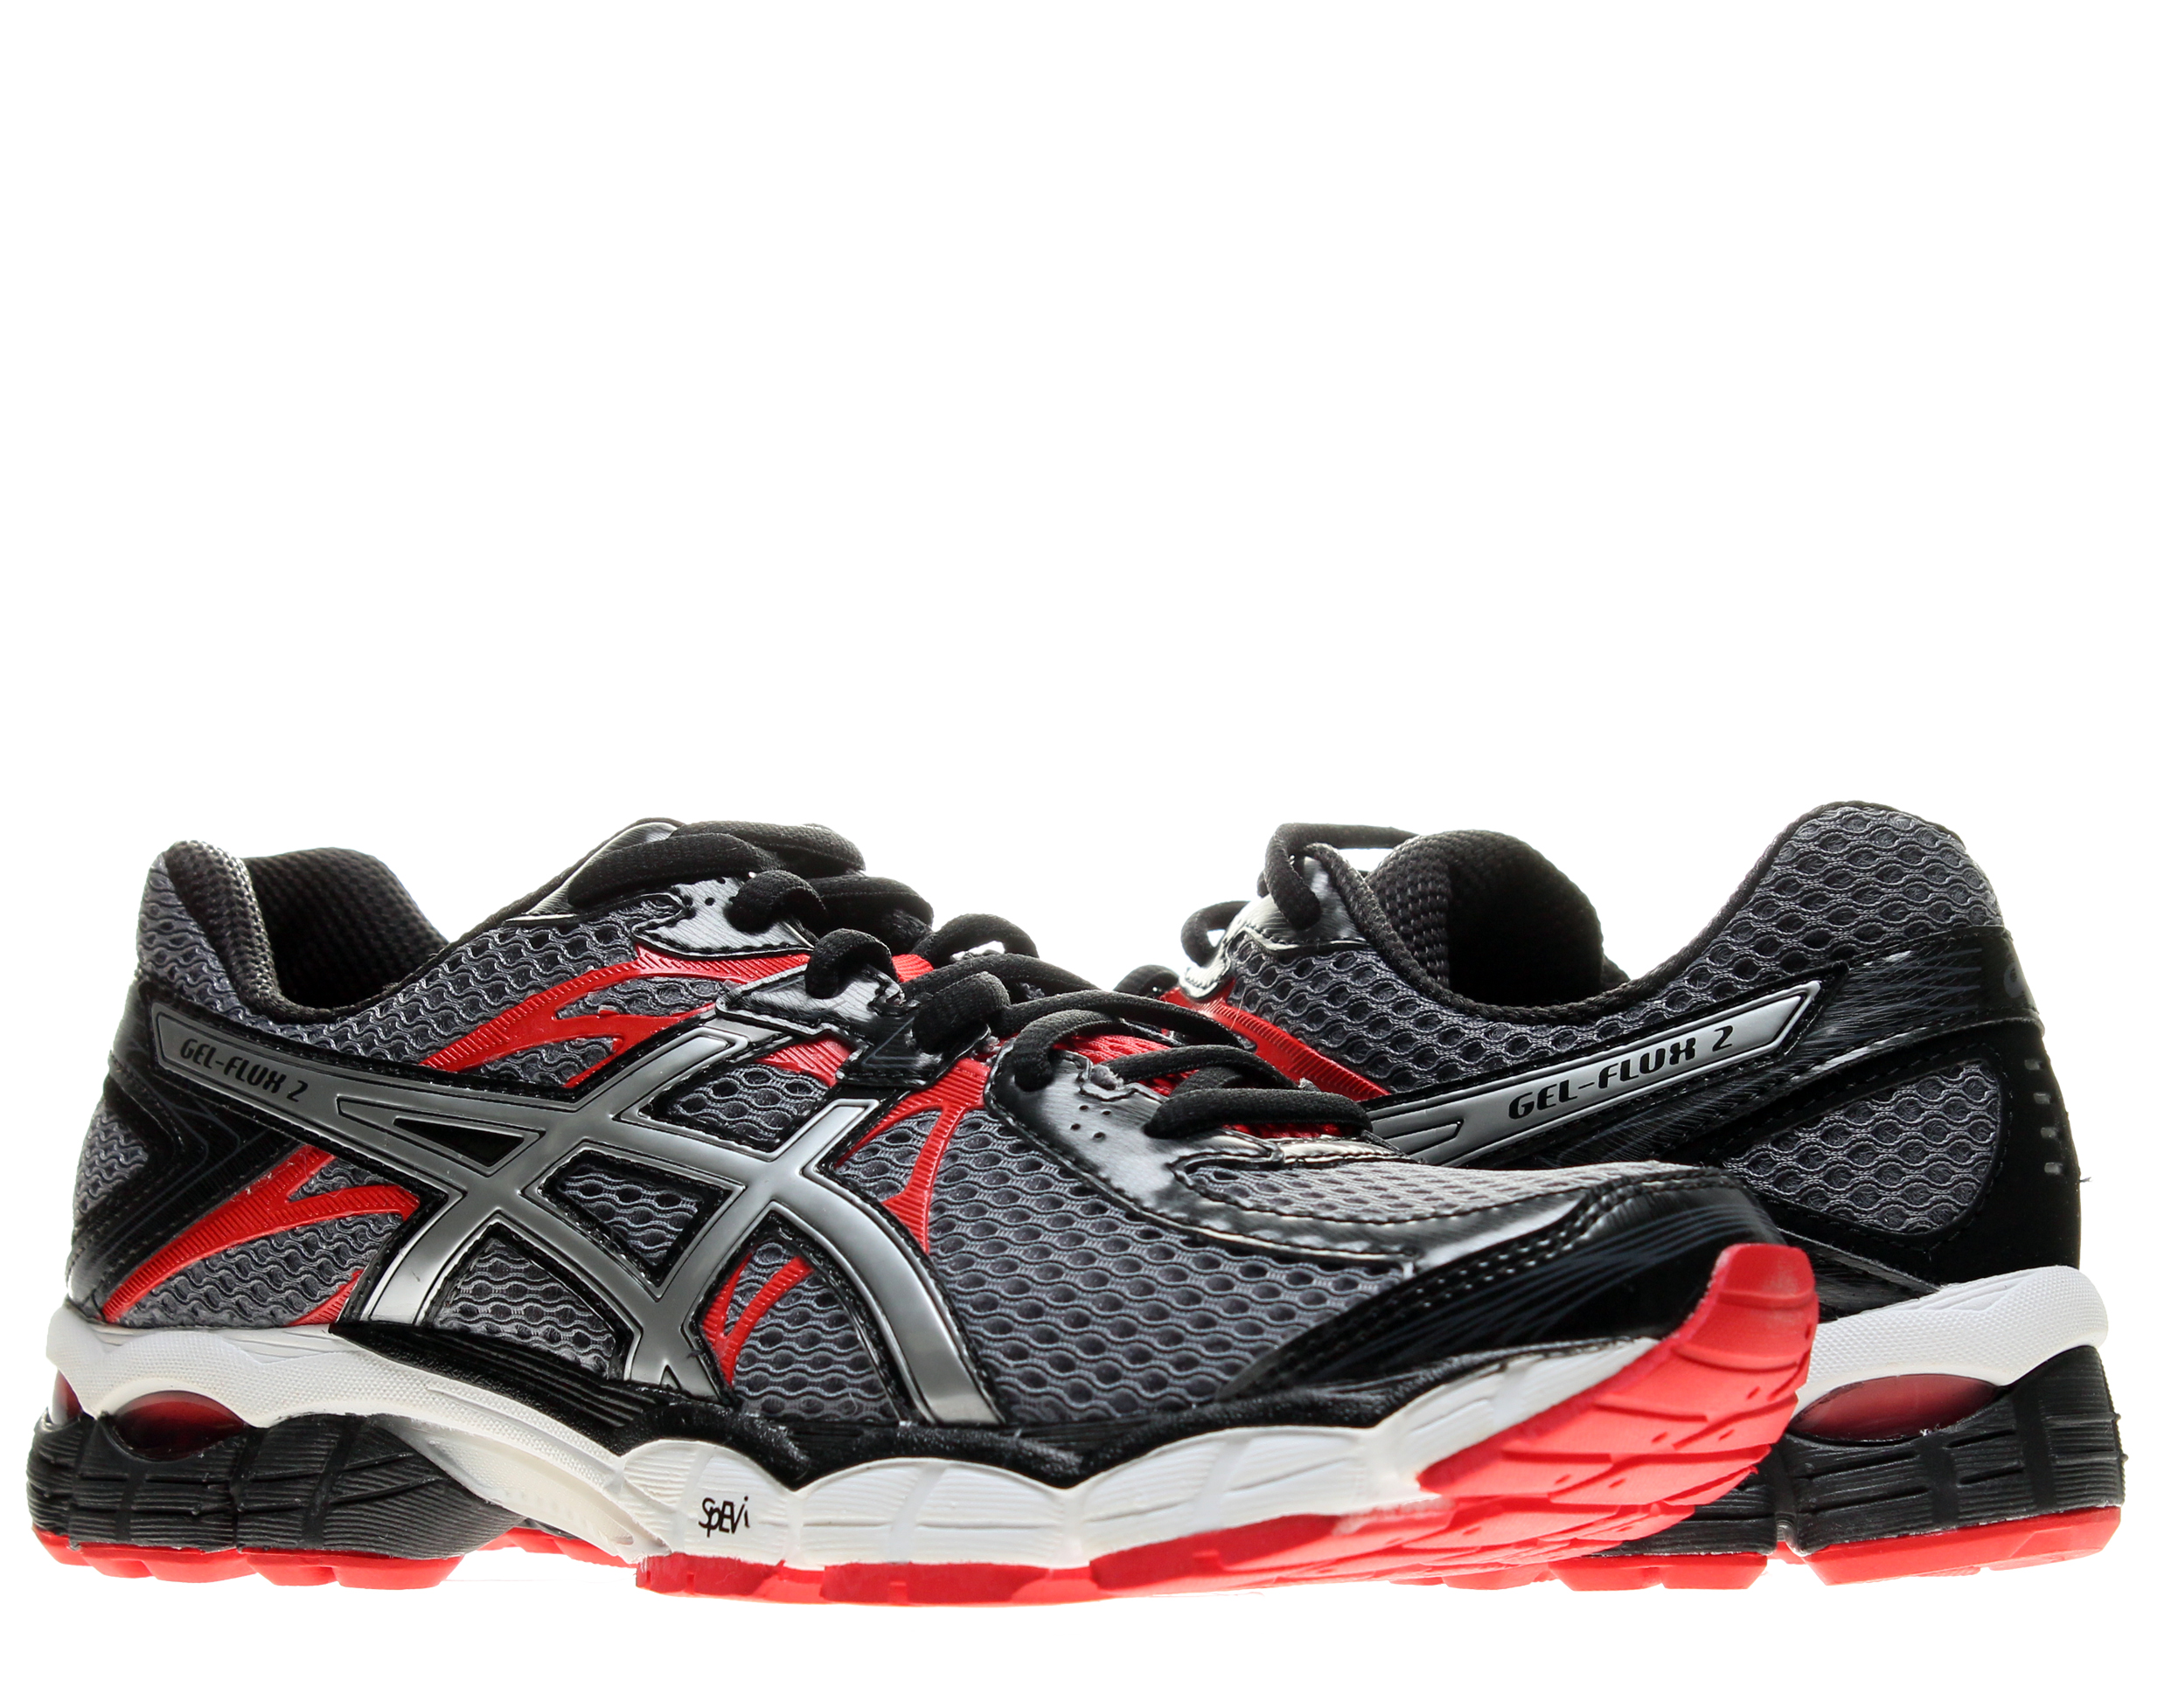 Asics Gel-Flux 2 Carbon Lightning-Red Men's Running Shoes T518N-7491 by Asics